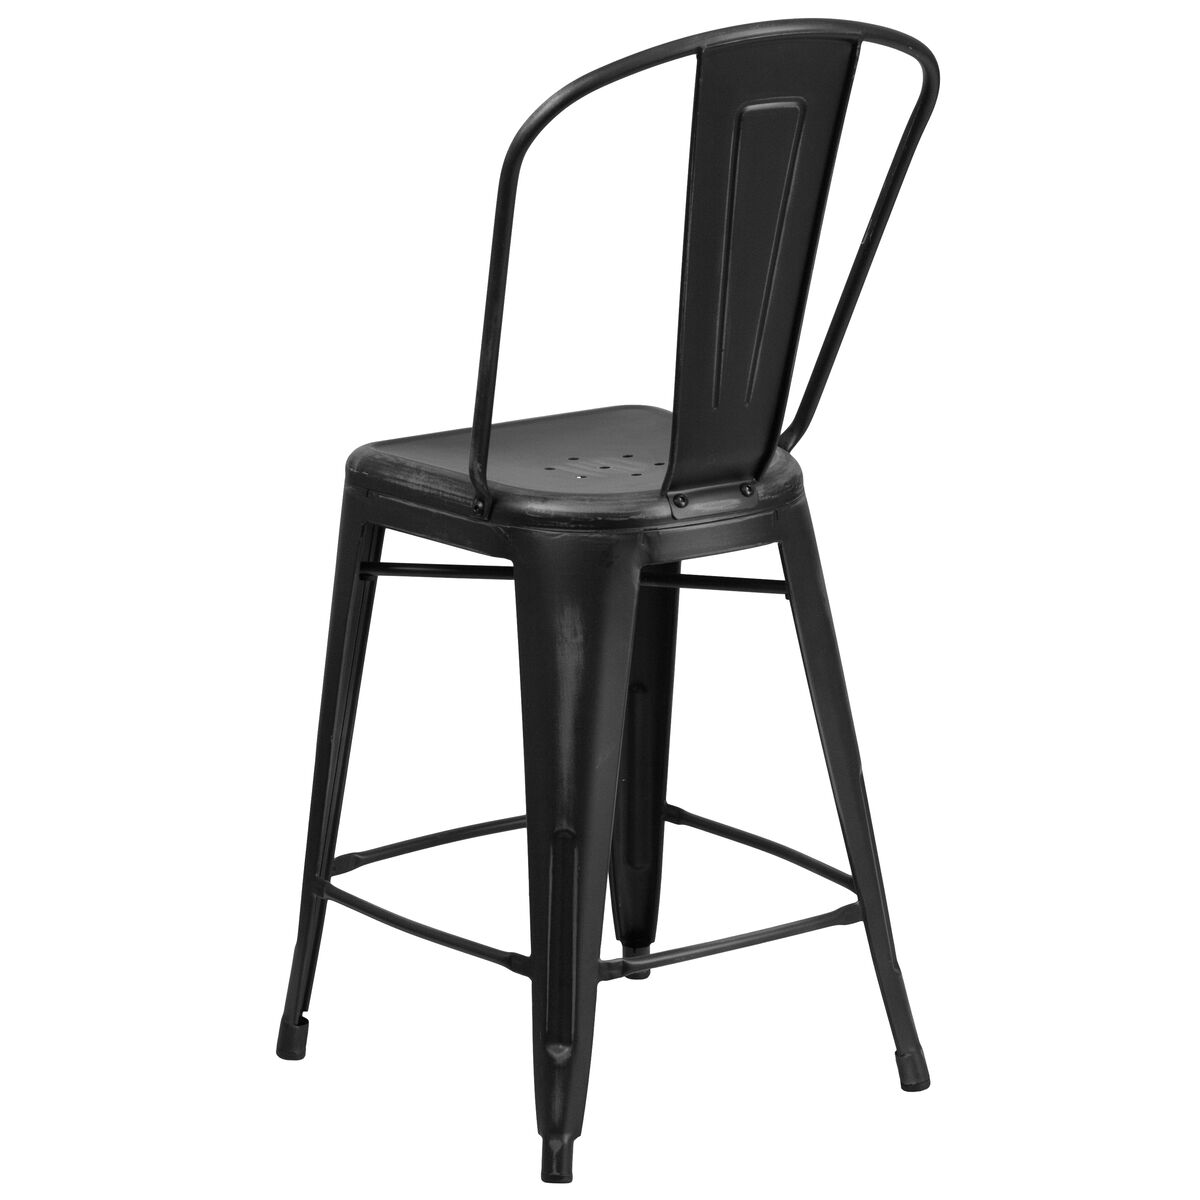 Our 24 High Distressed Black Metal Indoor Outdoor Counter Height Stool With Back